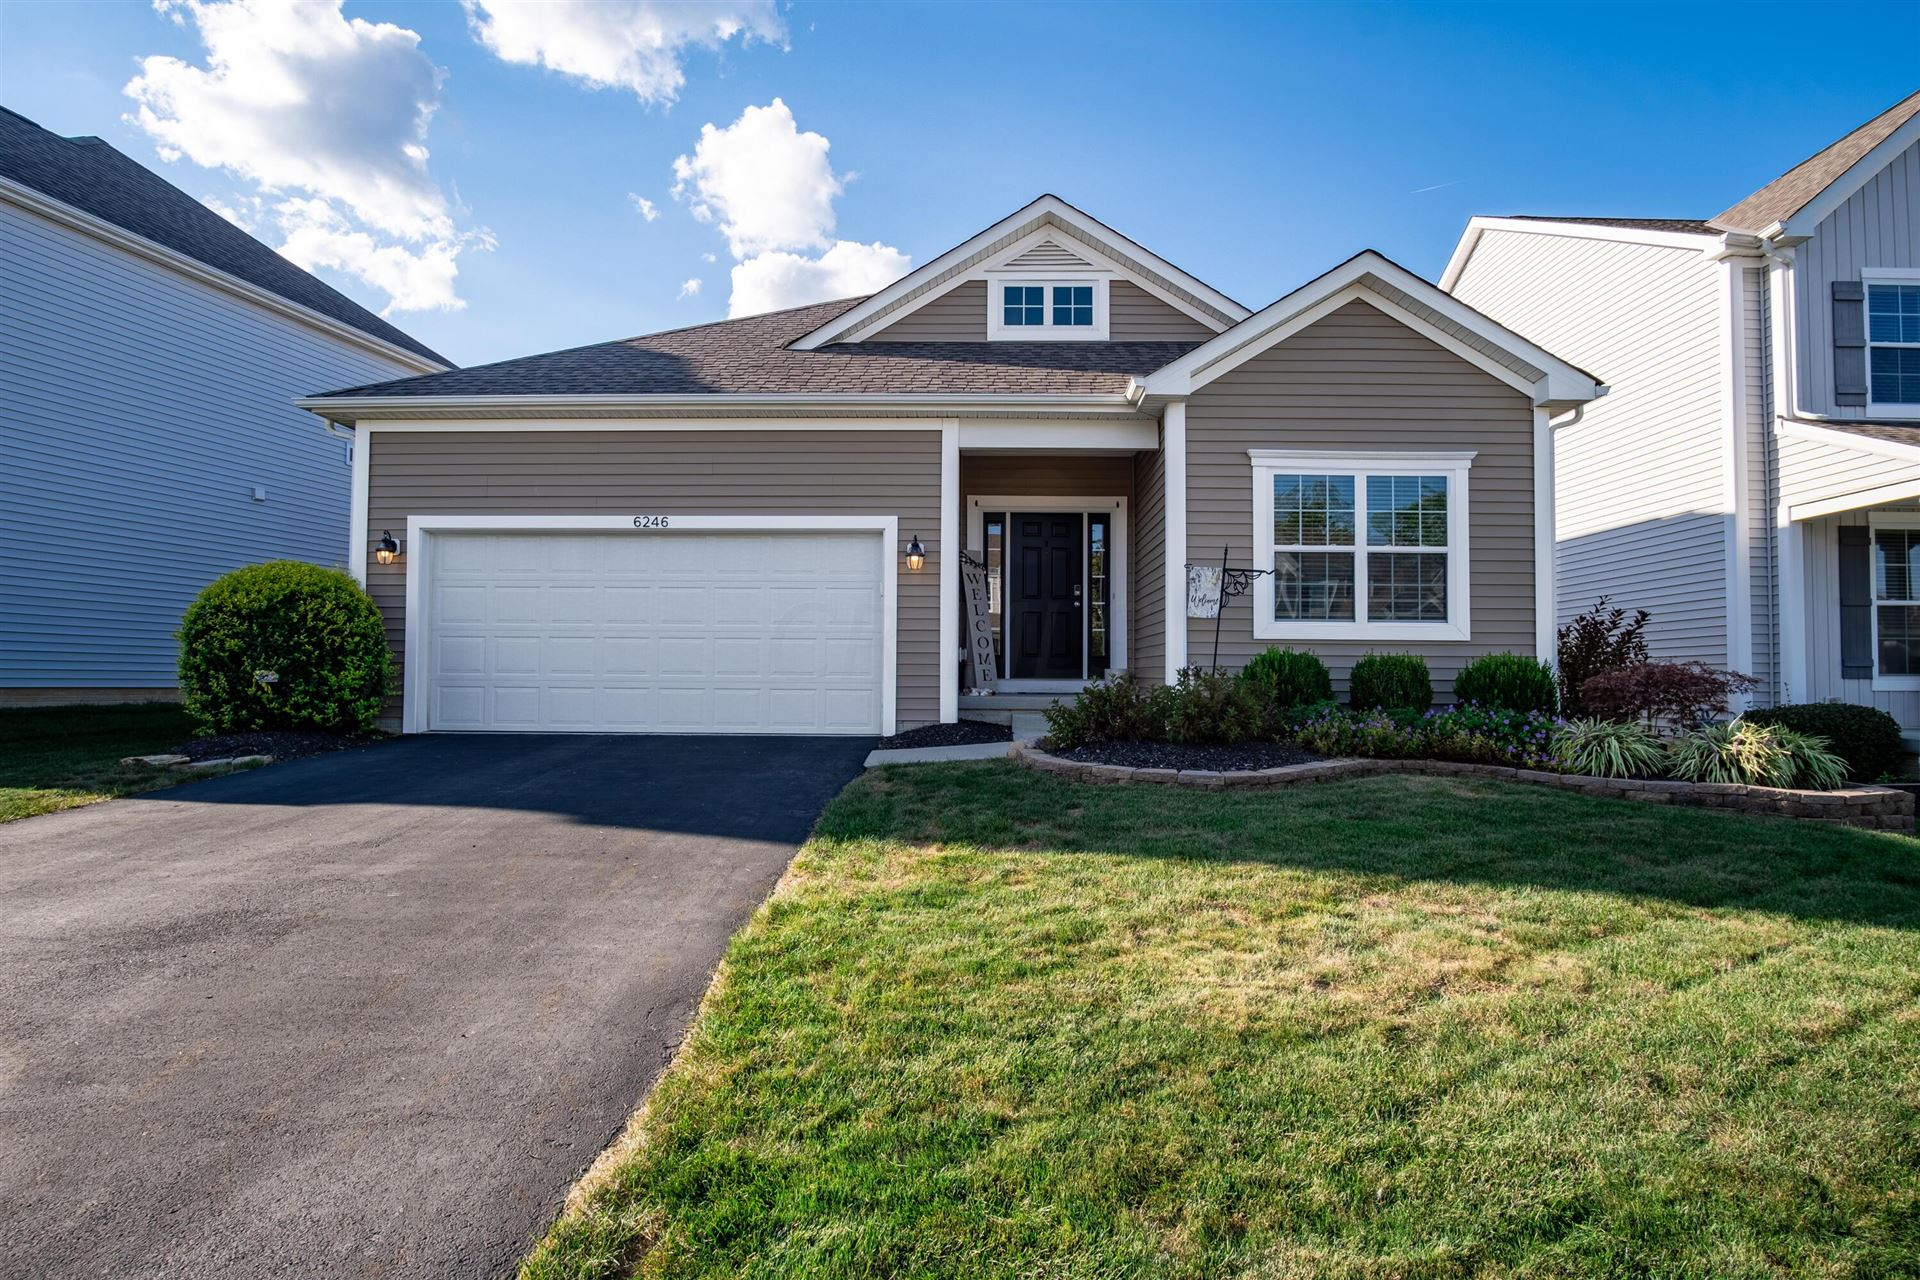 Photo of 6246 Upper Albany Crossing Drive, Westerville, OH 43081 (MLS # 221036486)